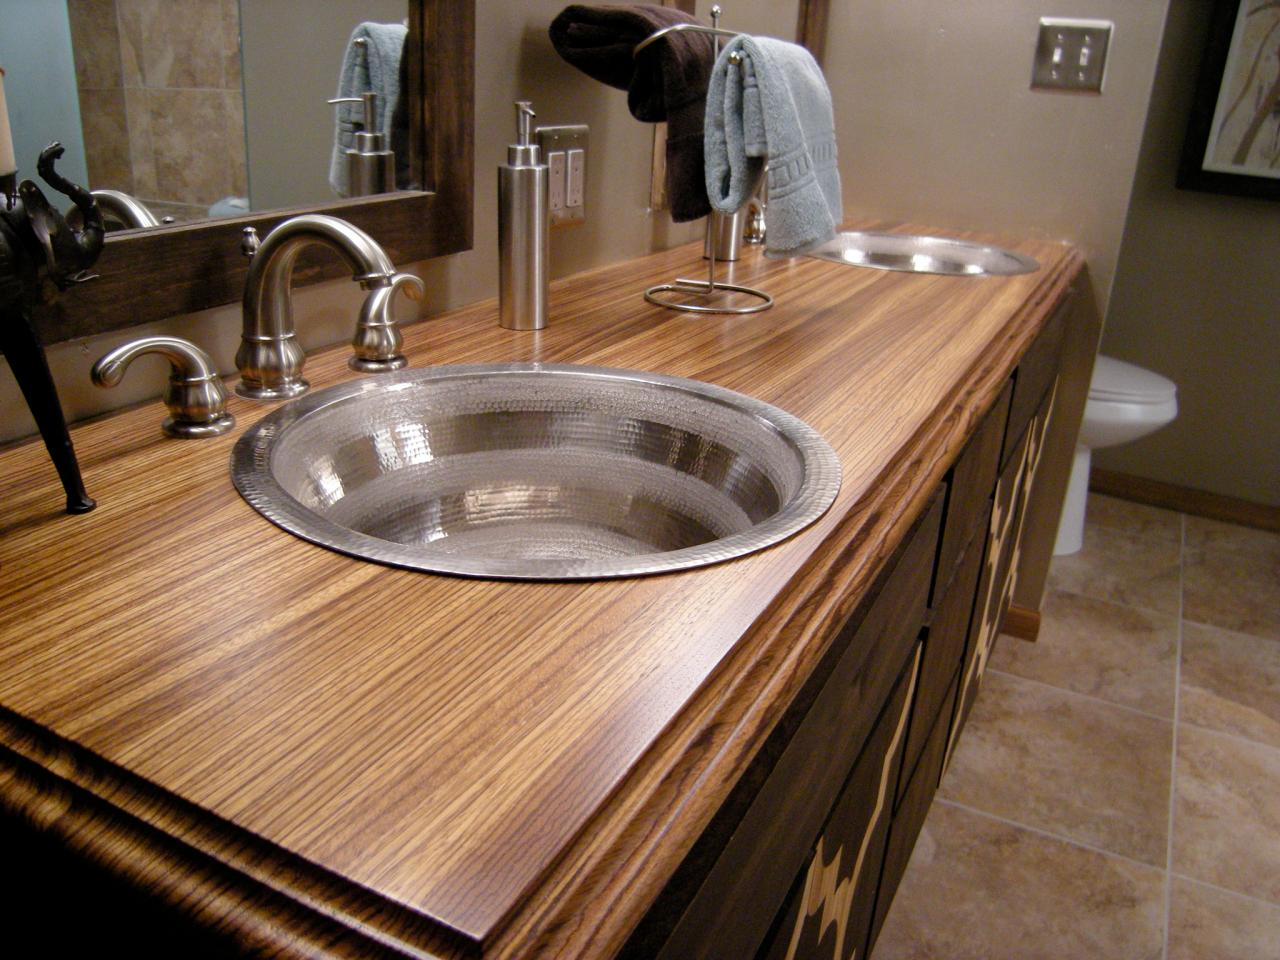 Bathroom Vanity Options bathroom countertop material options | hgtv